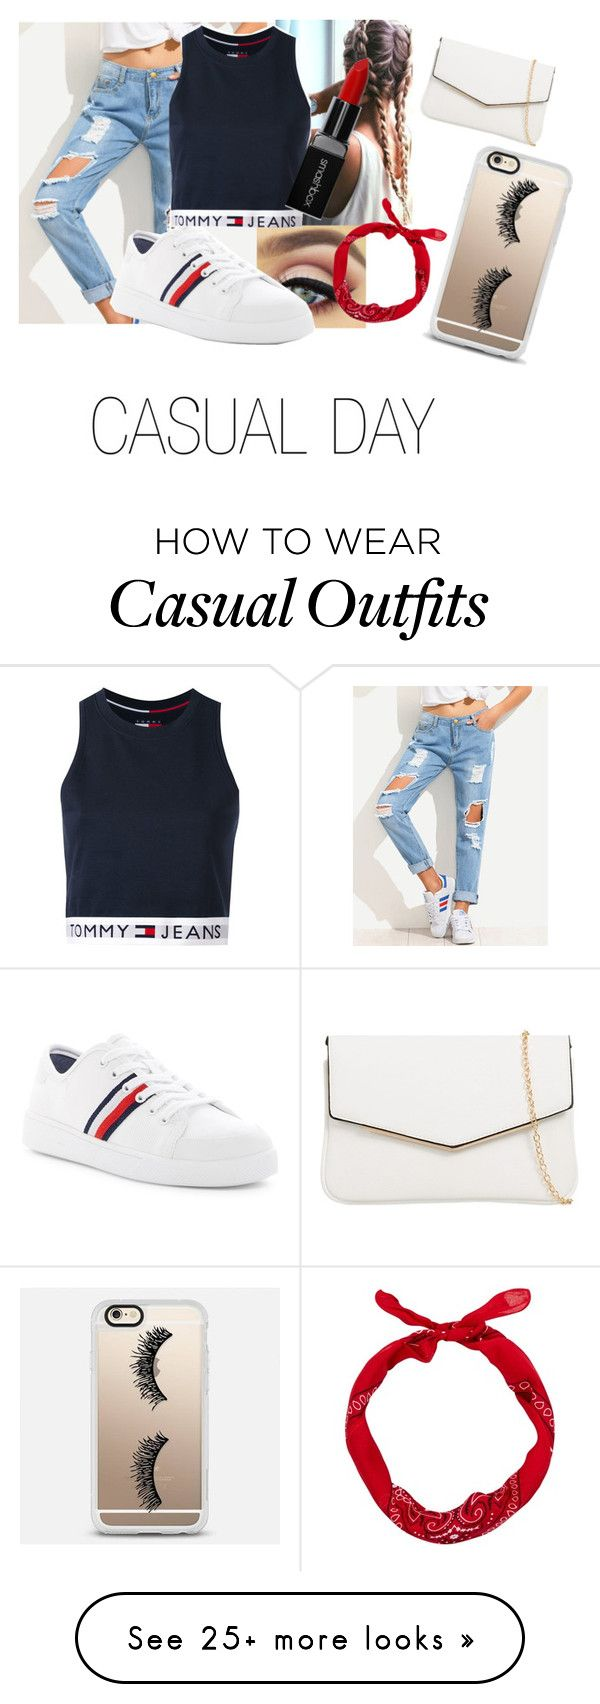 """casual day"" by georgia-harnish on Polyvore featuring Tommy Hilfiger, Smashbox, Casetify and KoKo Couture"